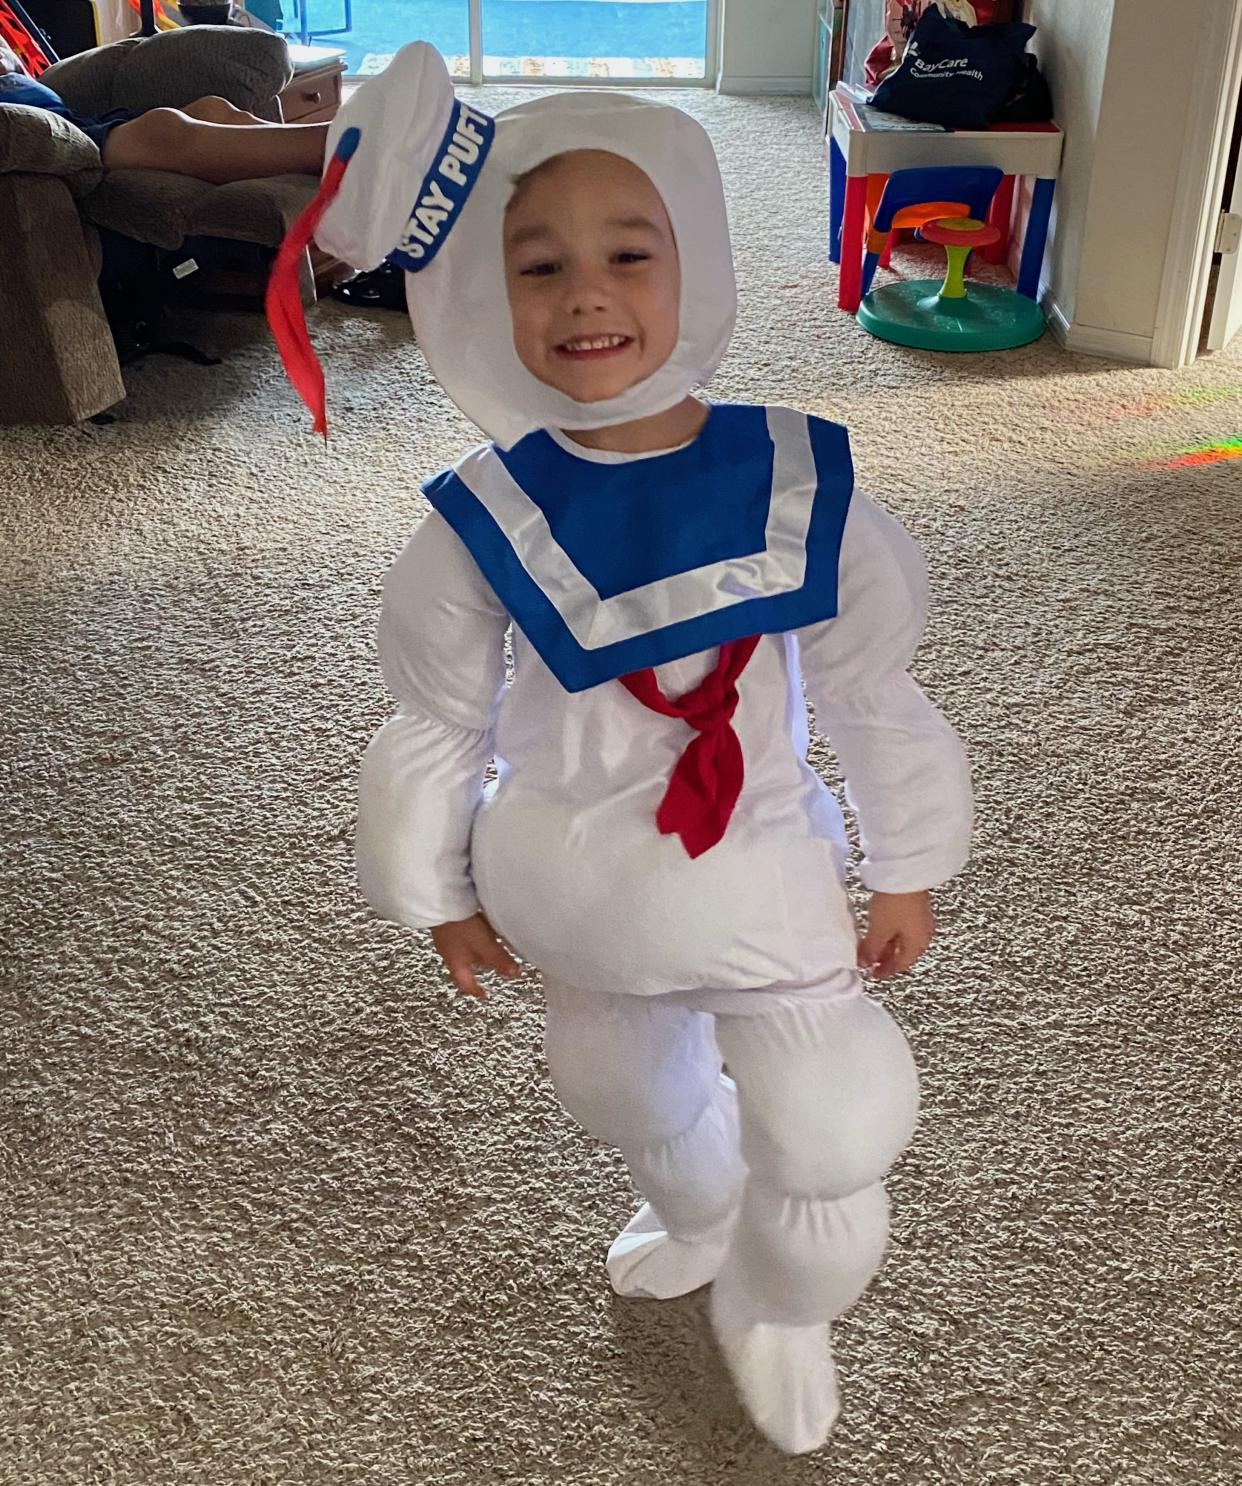 Dakota Baxter, 5, can't wait to trick-or-treat this year in his Stay Puft Marshmallow Man costume. (Photo: Marissa Baxter)